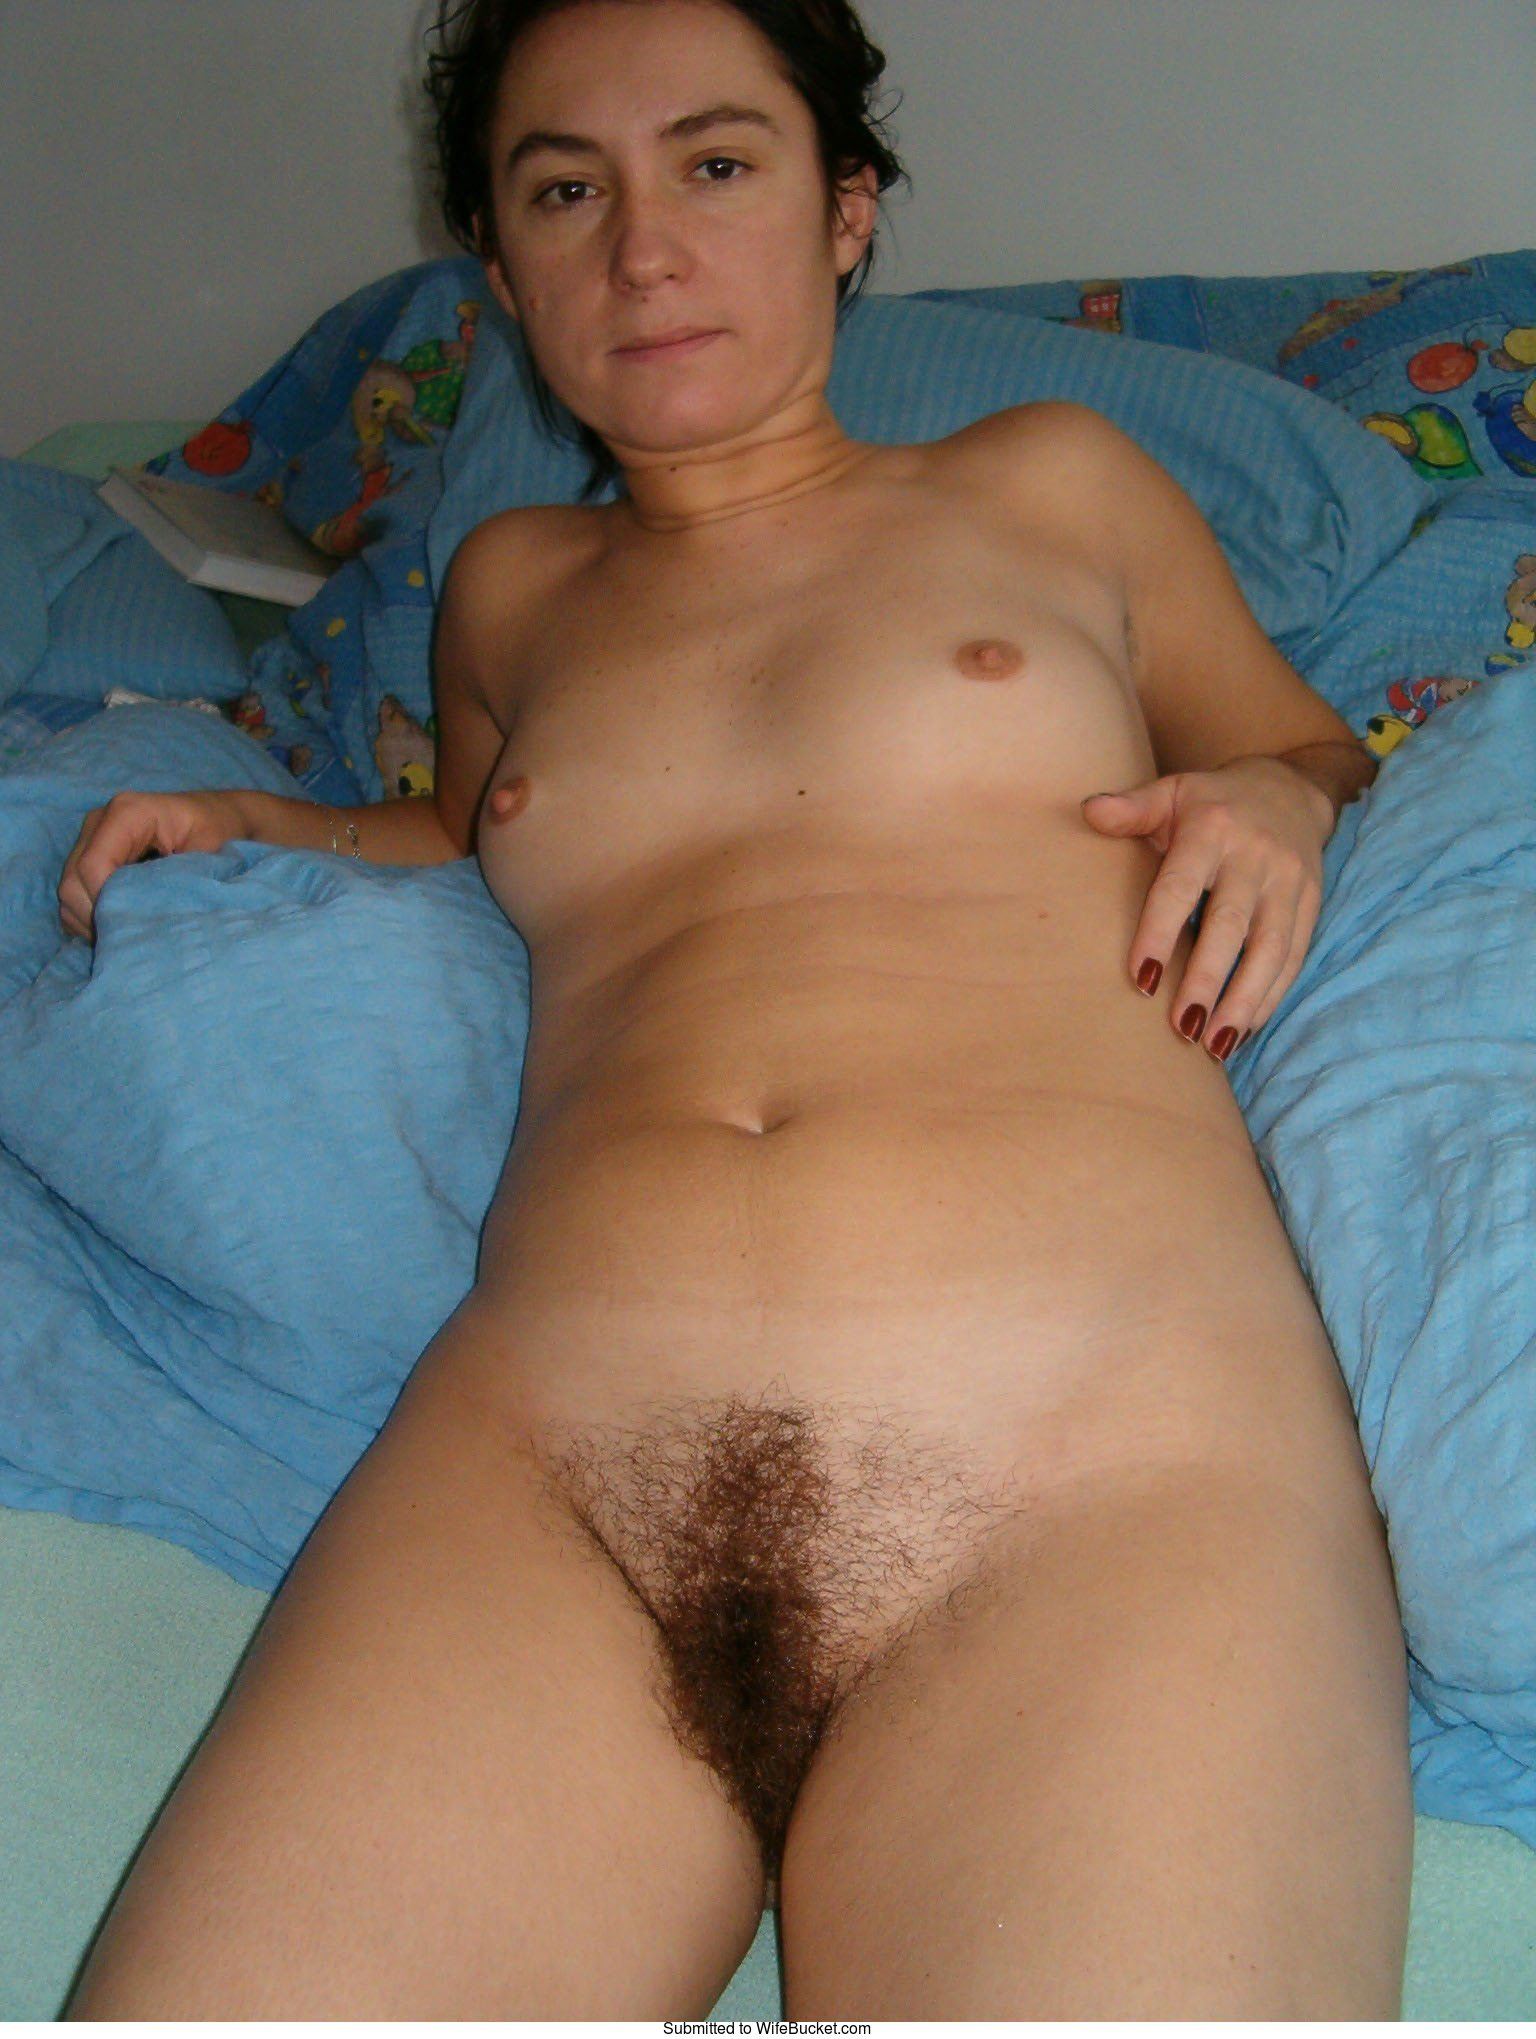 Mixed Pics Of Hairy Amateur Milfs  Wifebucket  Offical Milf Blog-2455